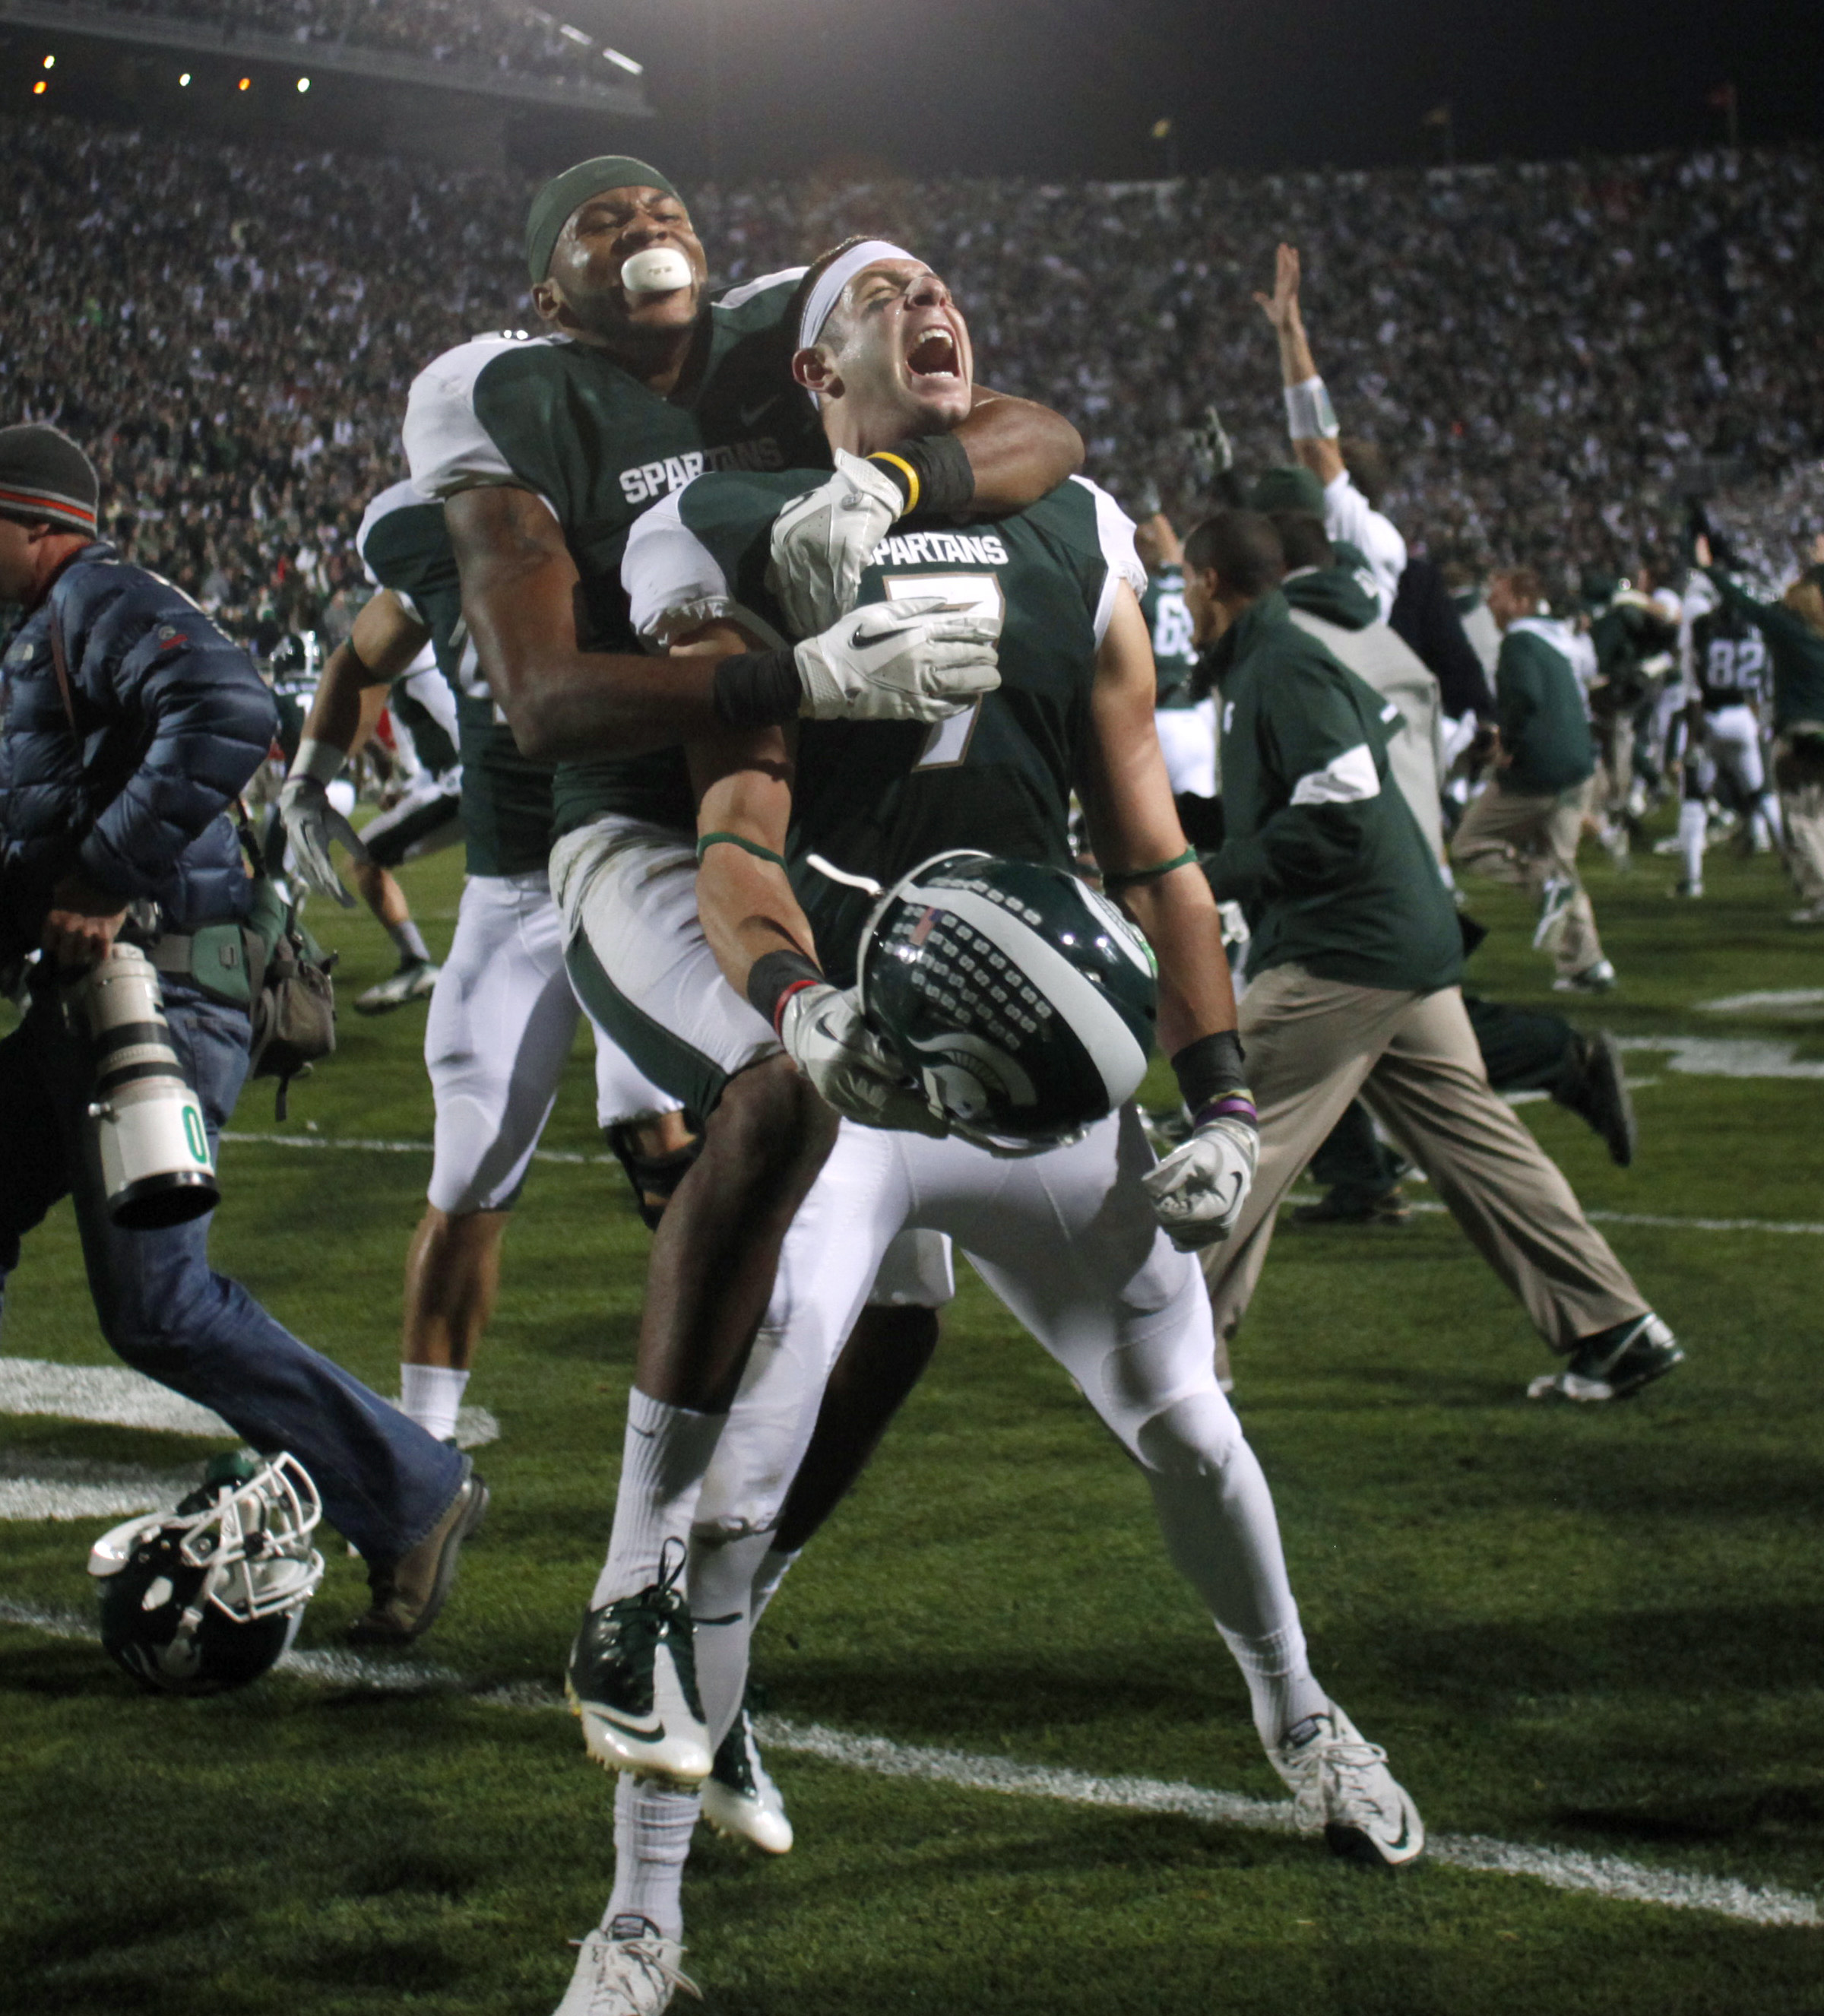 FILE - In this Oct. 22, 2011, file photo, Michigan State's Keith Nichol (7), center, and B.J. Cunningham celebrate following a 37-31 win over Wisconsin in an NCAA college football game in East Lansing, Mich. Nichol caught Kirk Cousins' 44-yarder for the t